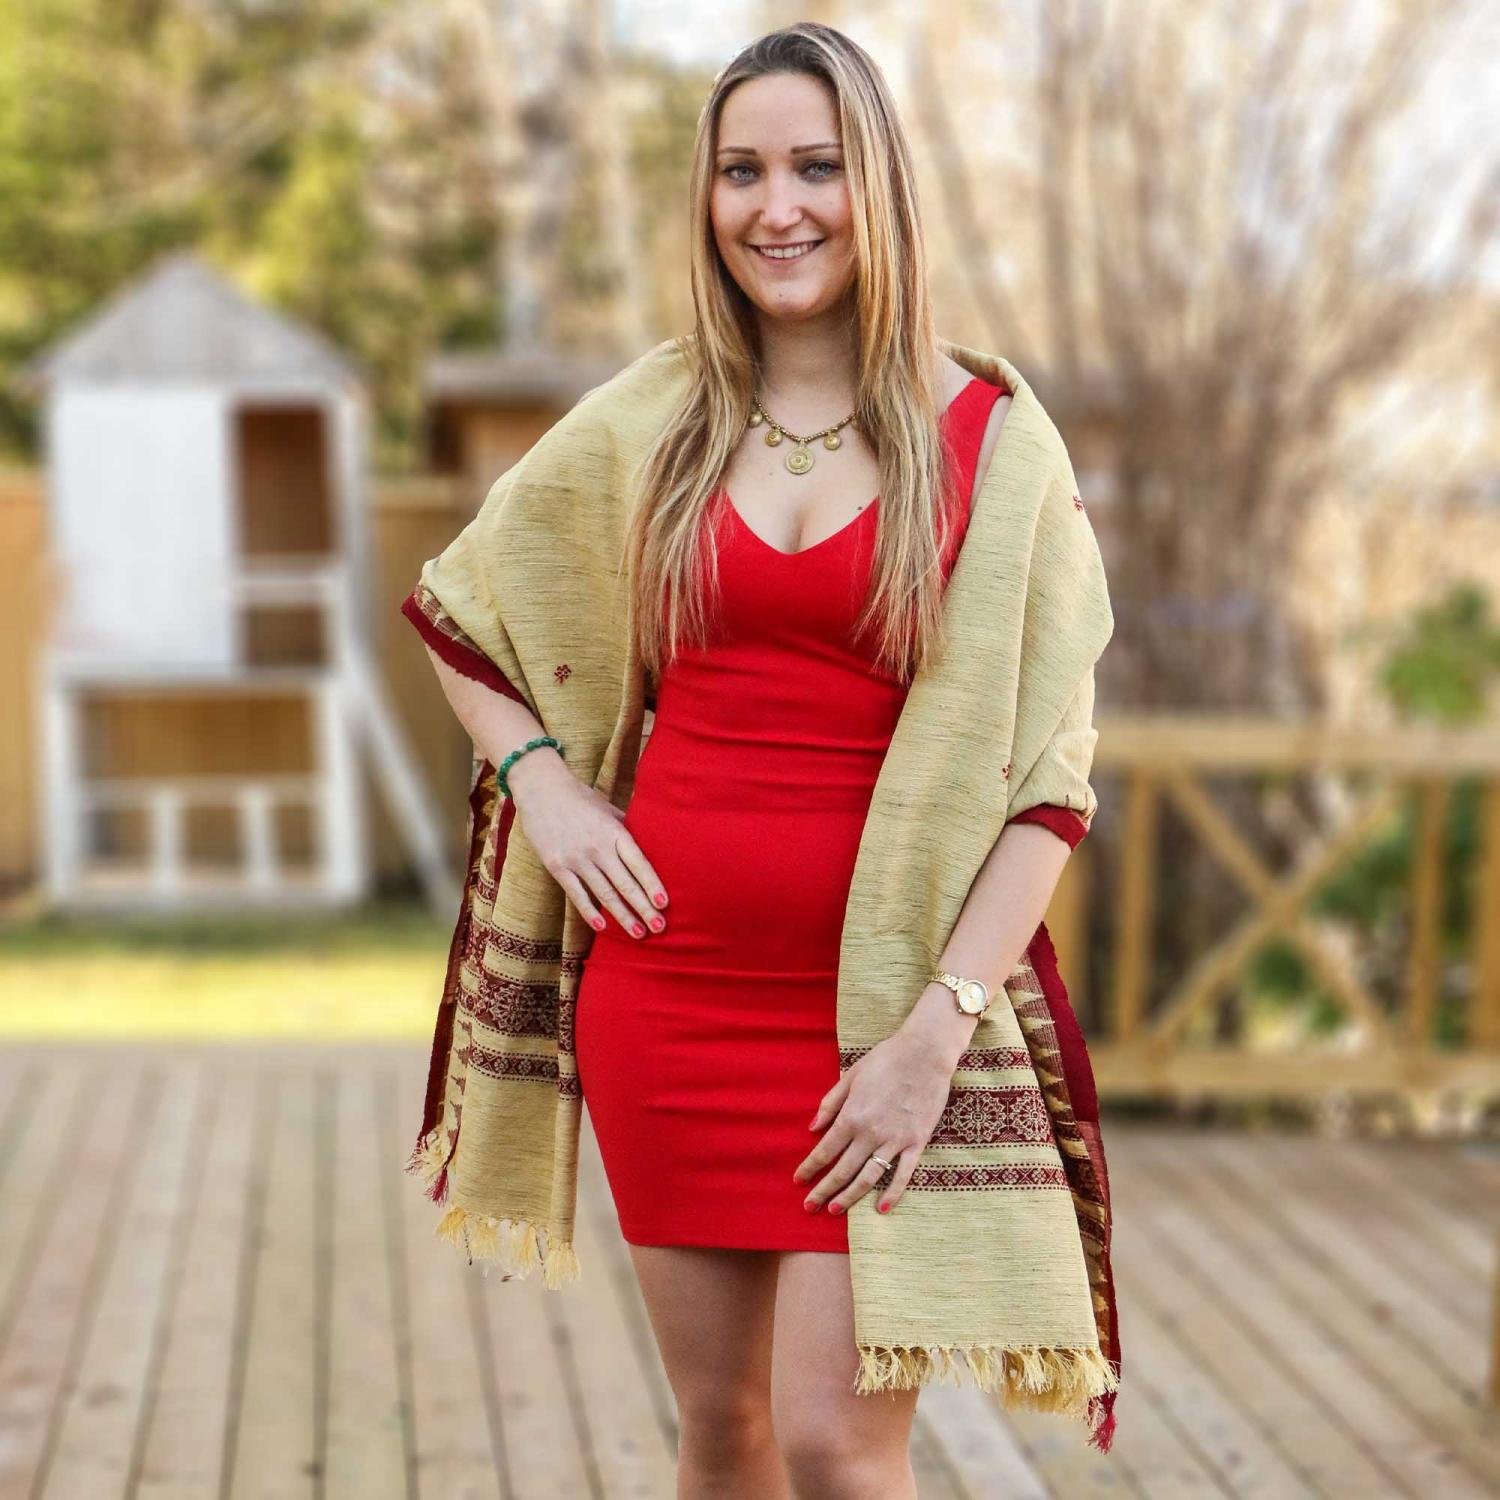 Woman in red dress wearing a golden shawl with red pattern edge and brass necklace posing on a wooden deck